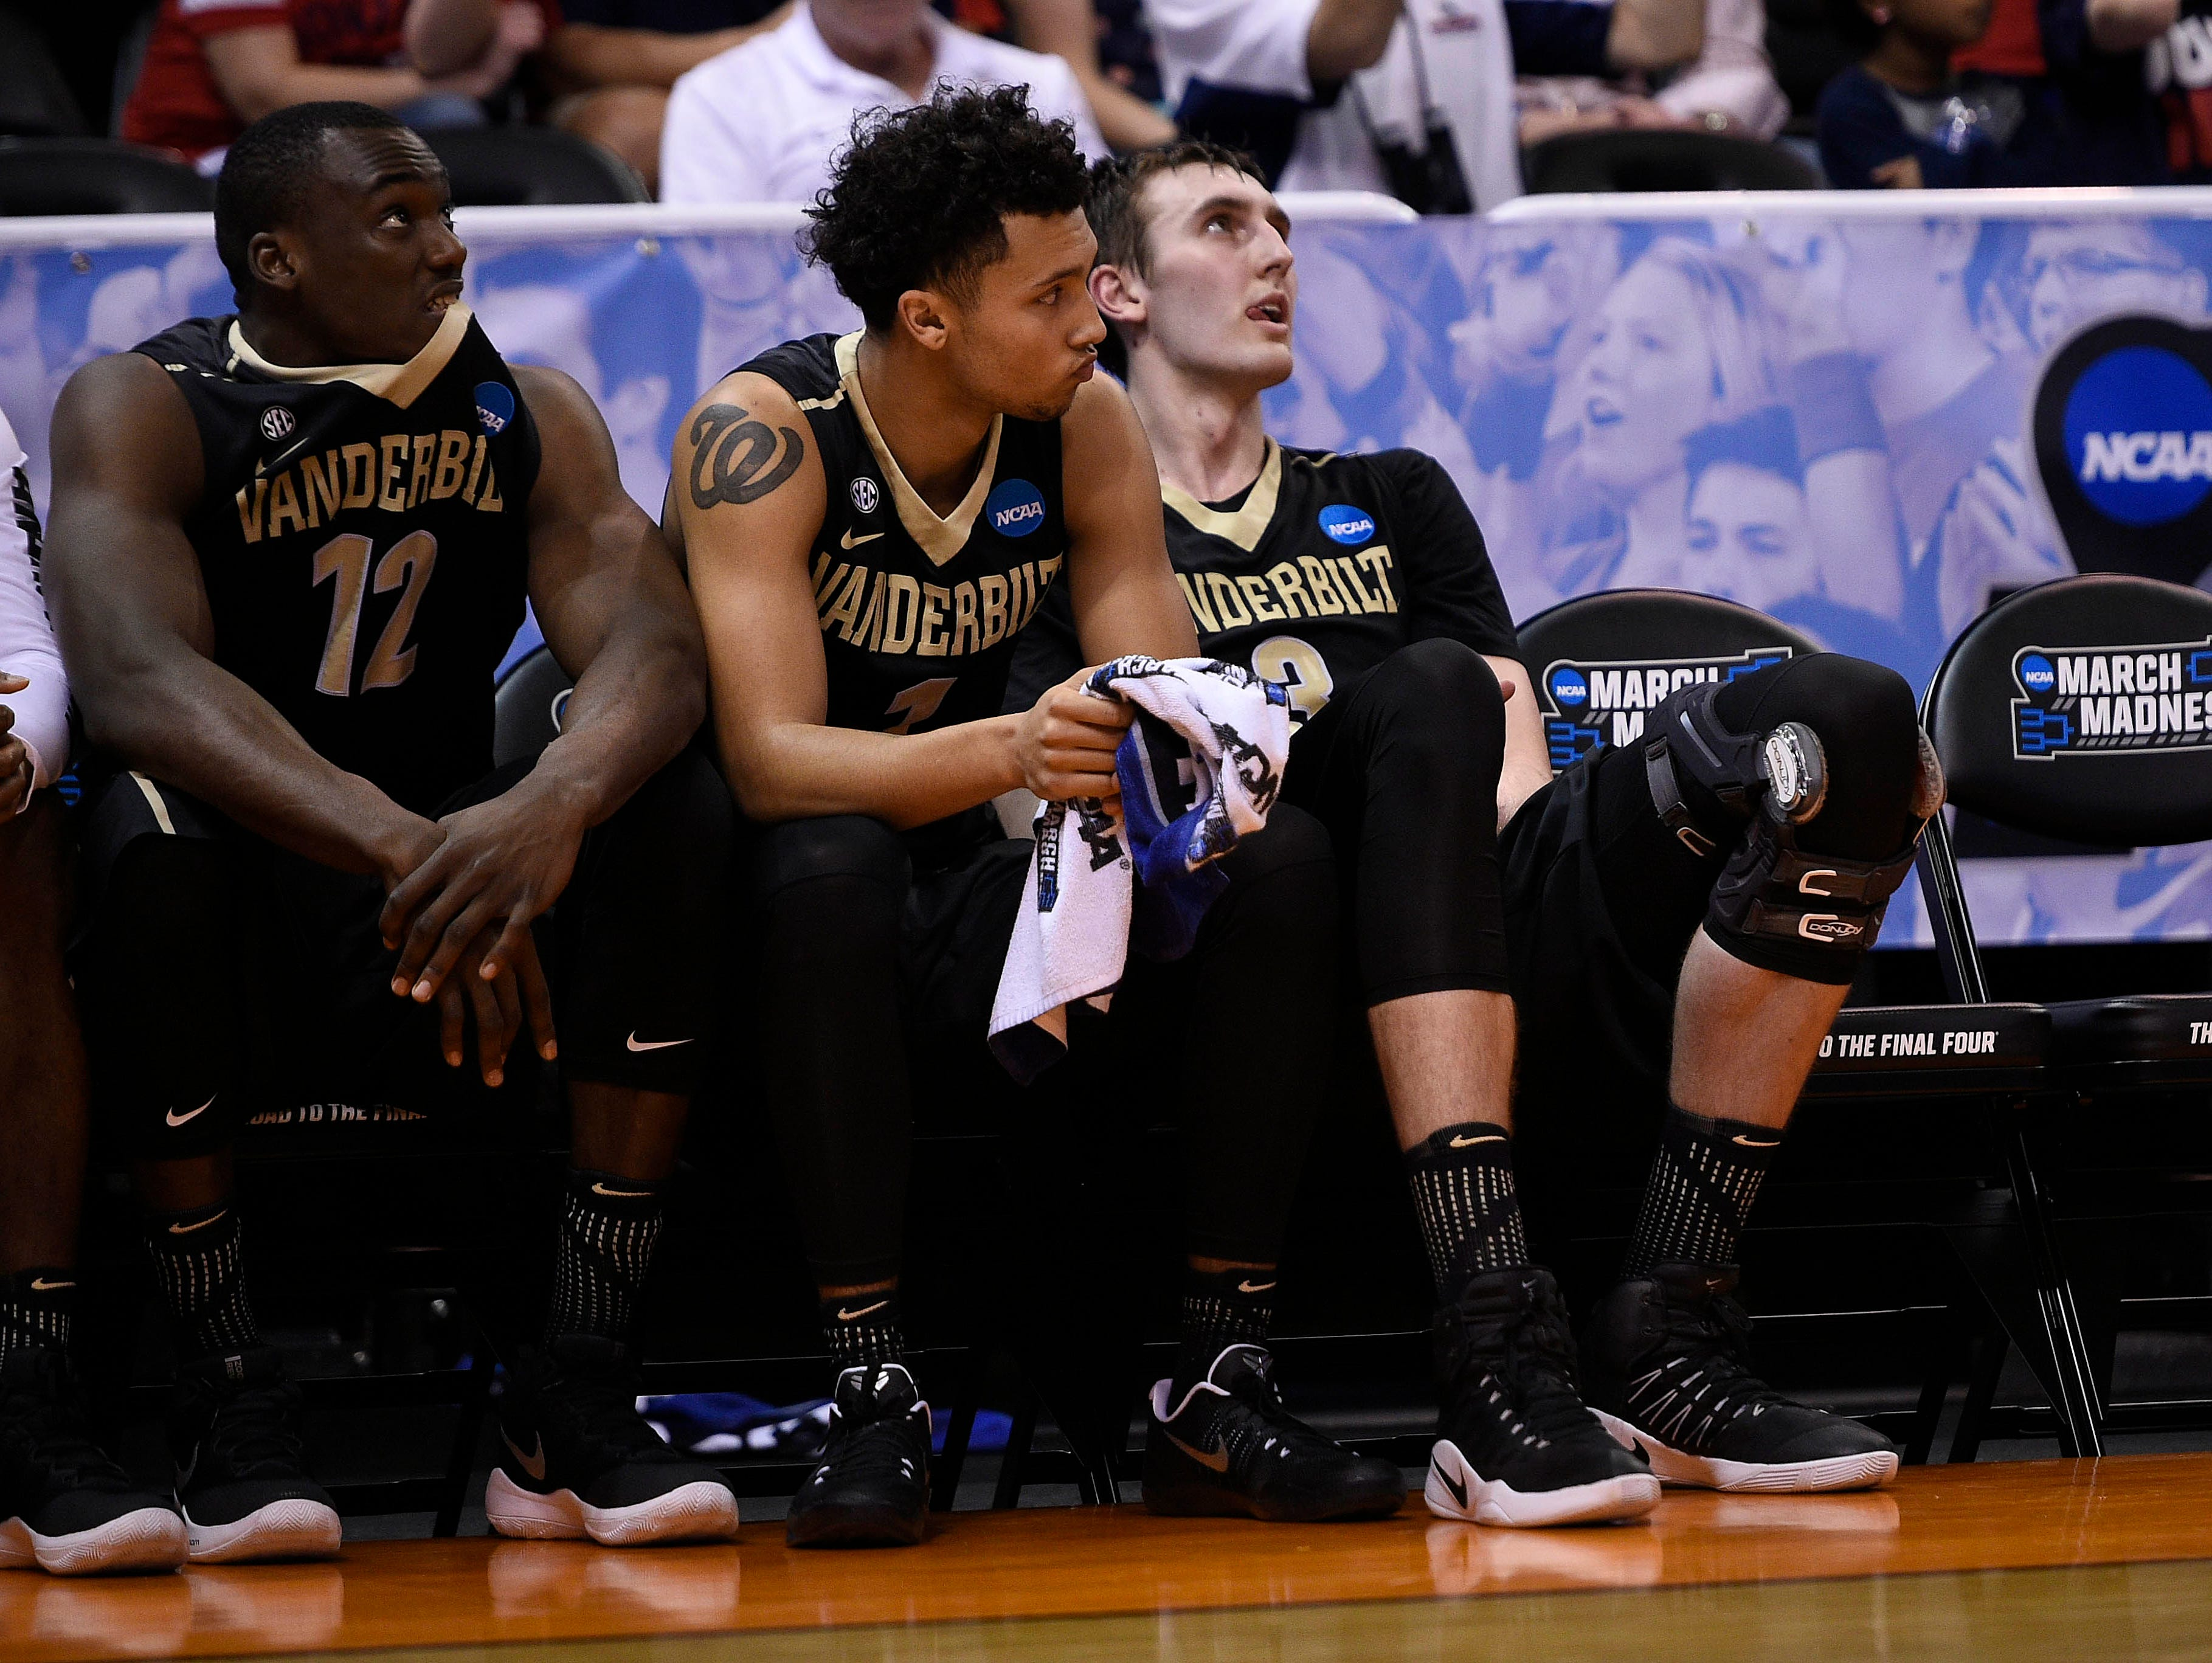 Vanderbilt center Djery Baptiste (12), guard Payton Willis (1) and forward Luke Kornet (3) react during the 68-66 loss against Northwestern in the second half of the first-round NCAA tournament game on March 16, 2017.